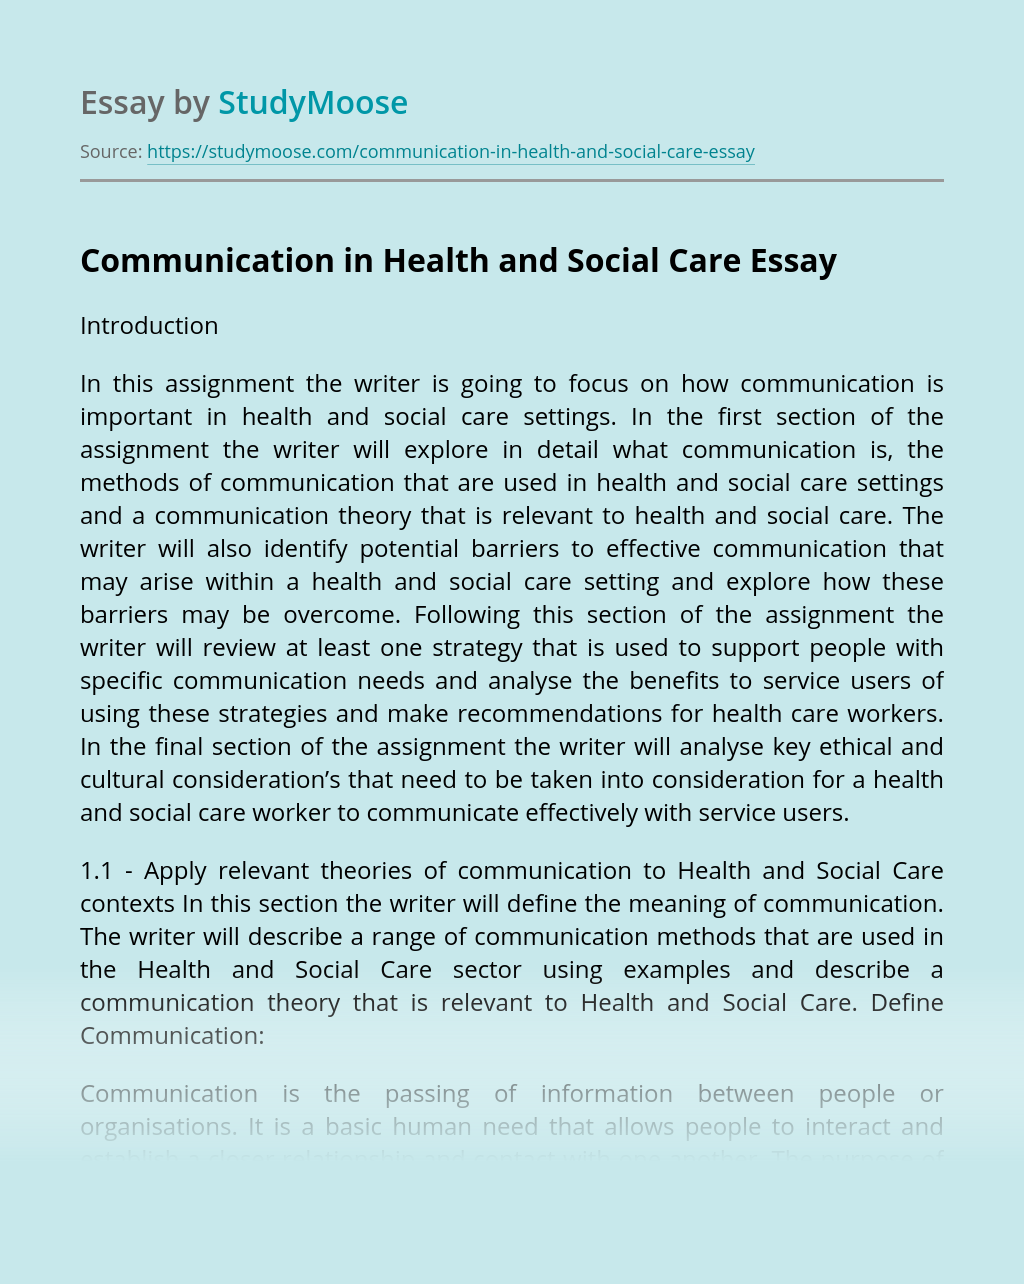 Communication in Health and Social Care